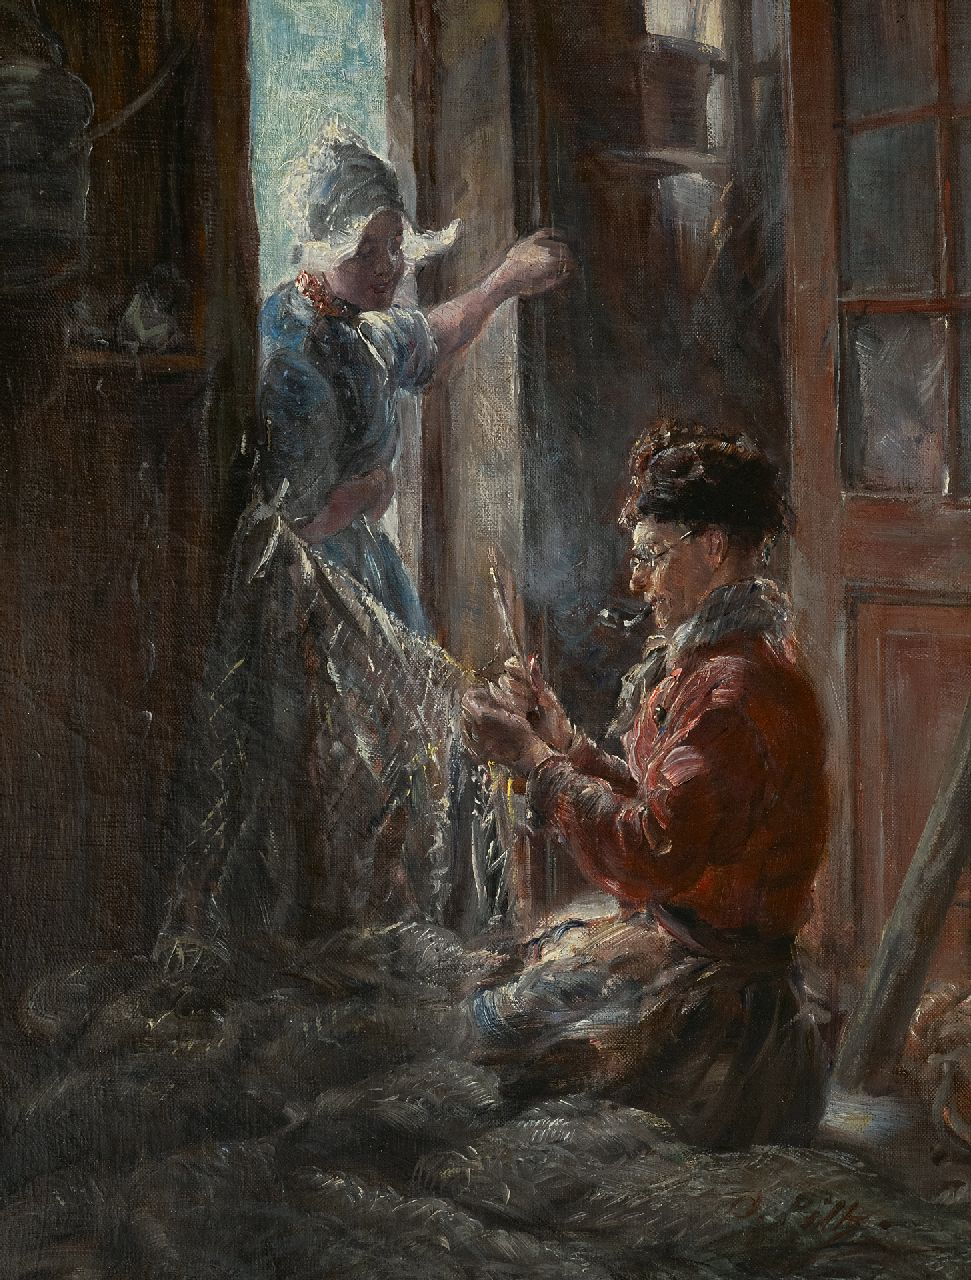 Otto Piltz | Repairing the nets, Volendam, oil on canvas, 45.6 x 36.4 cm, signed l.r. and painted ca. 1909